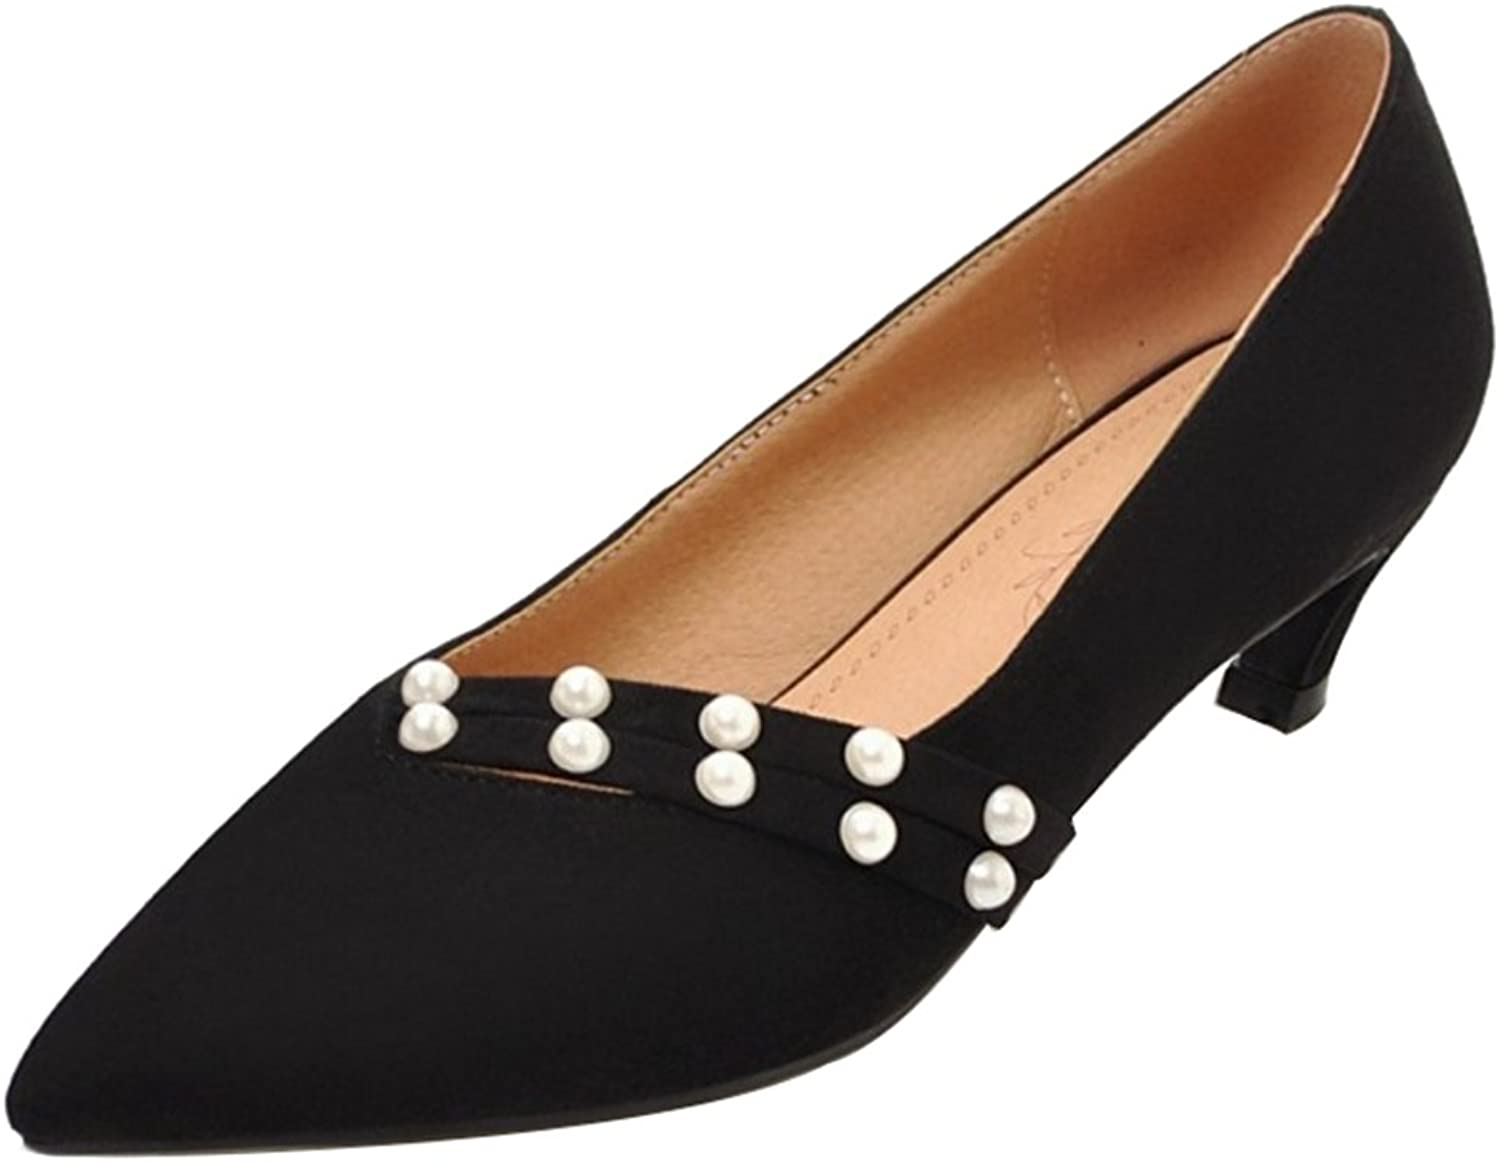 CuteFlats Pumps with Kitten Heel and Pointed Toe for Fashion Women